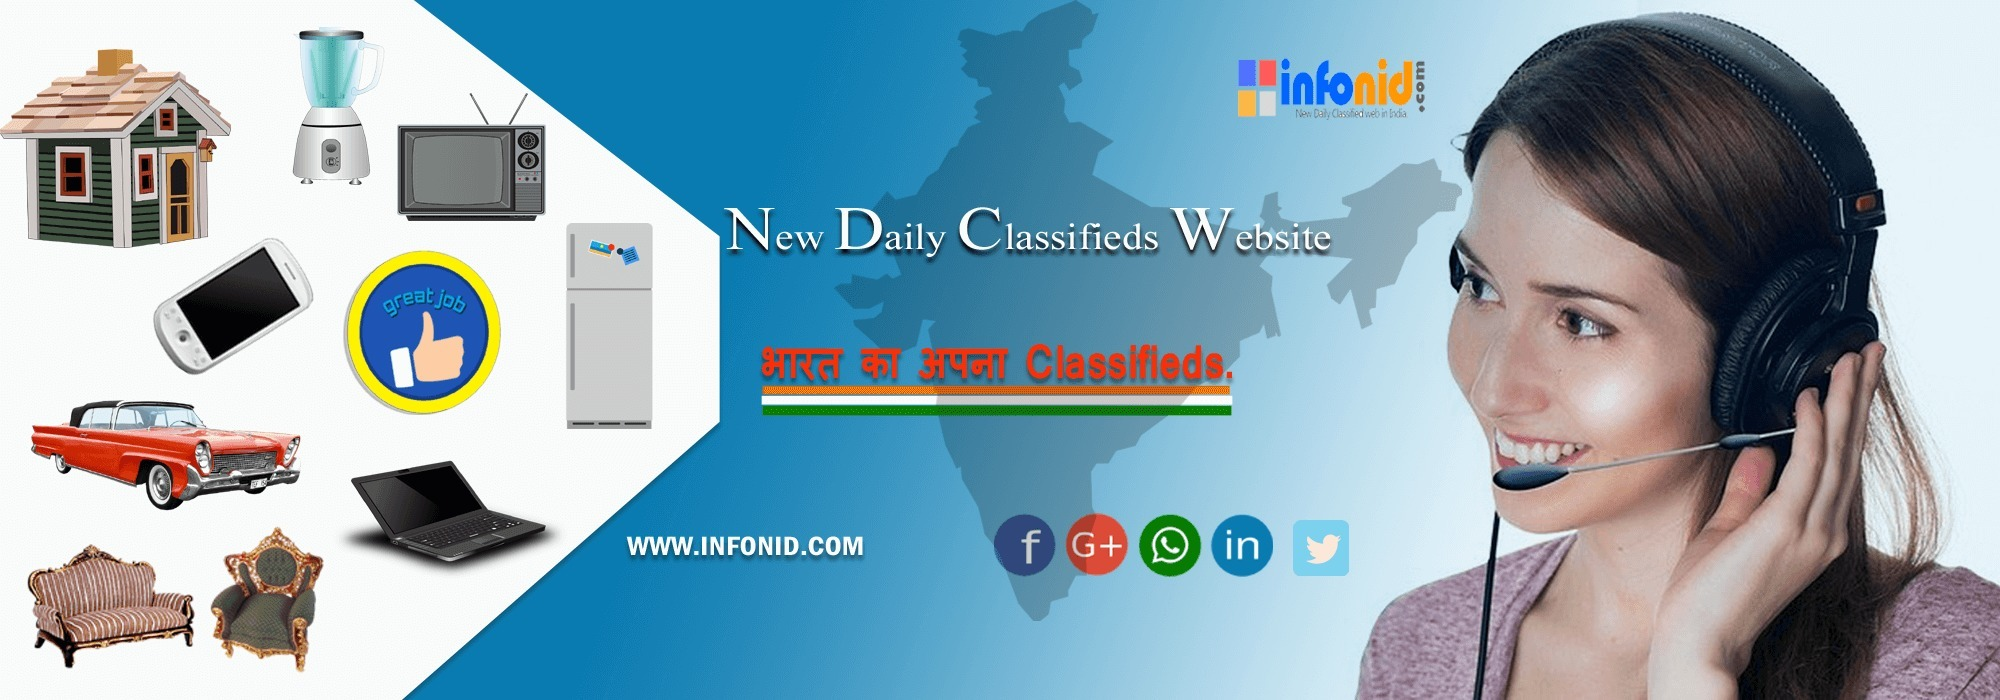 infonid.com (@infonid) Cover Image